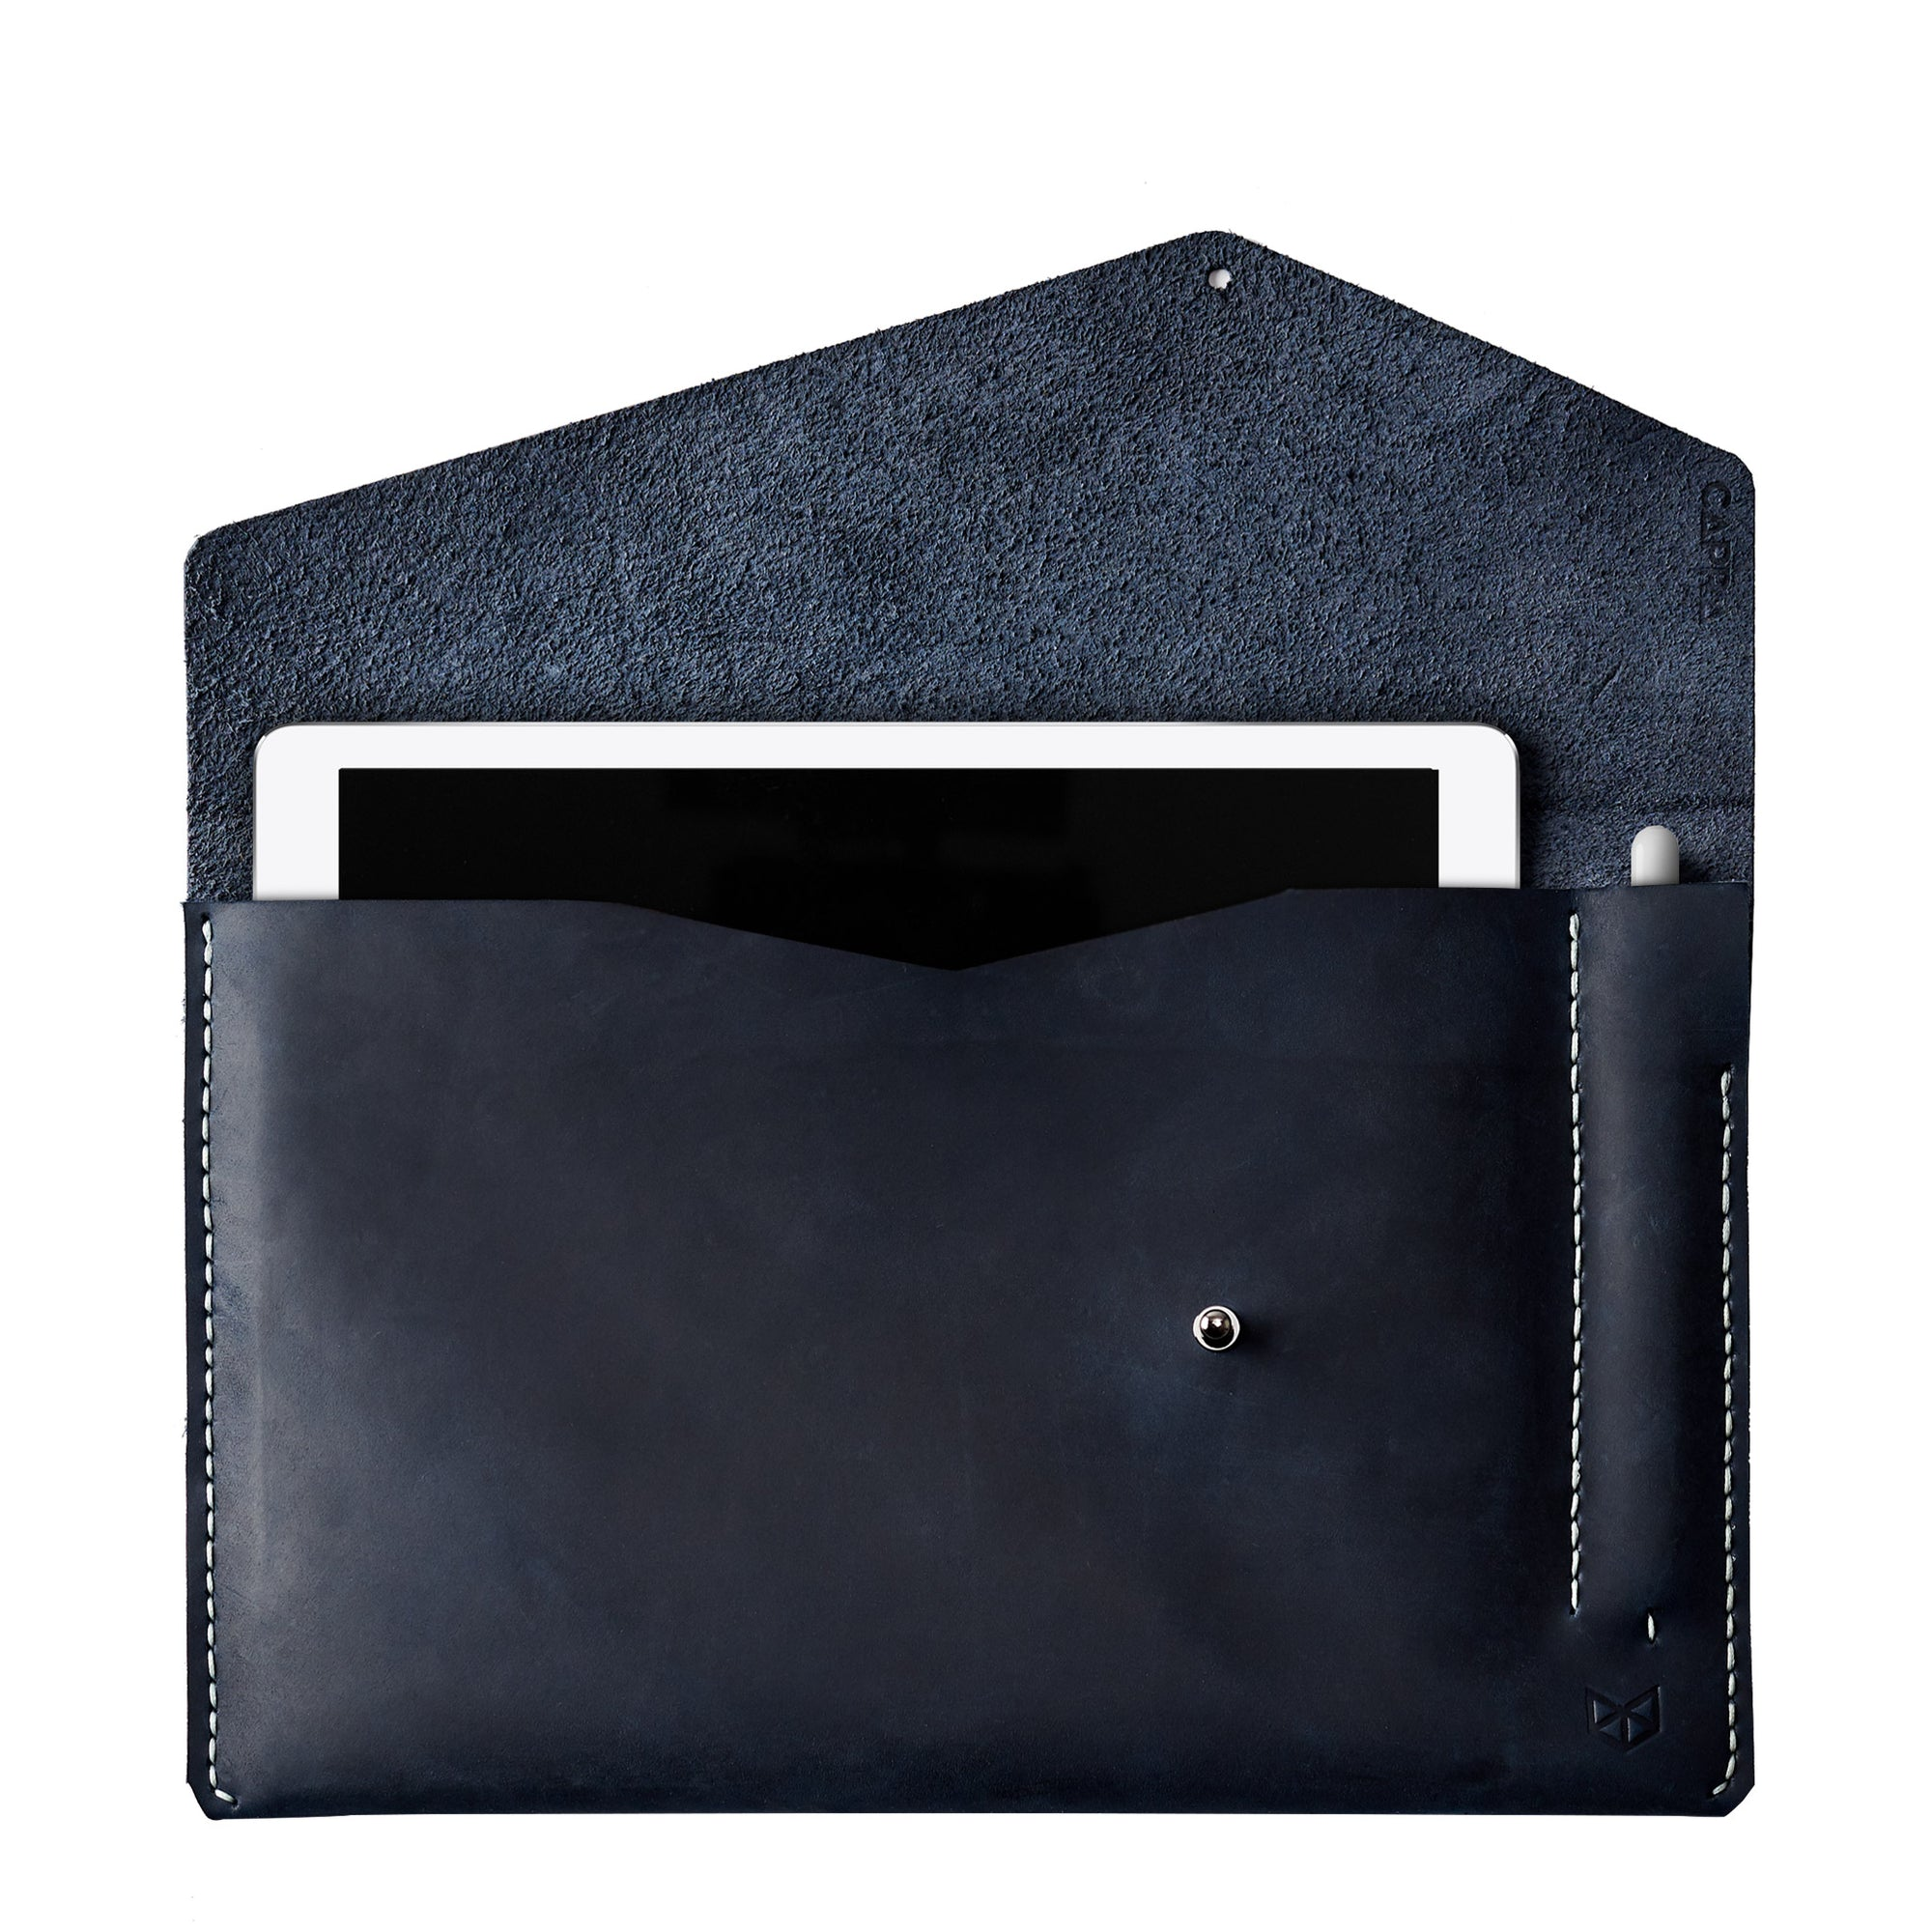 iPad Sleeve. iPad Leather Case Navy With Apple Pencil Holder by Capra Leather